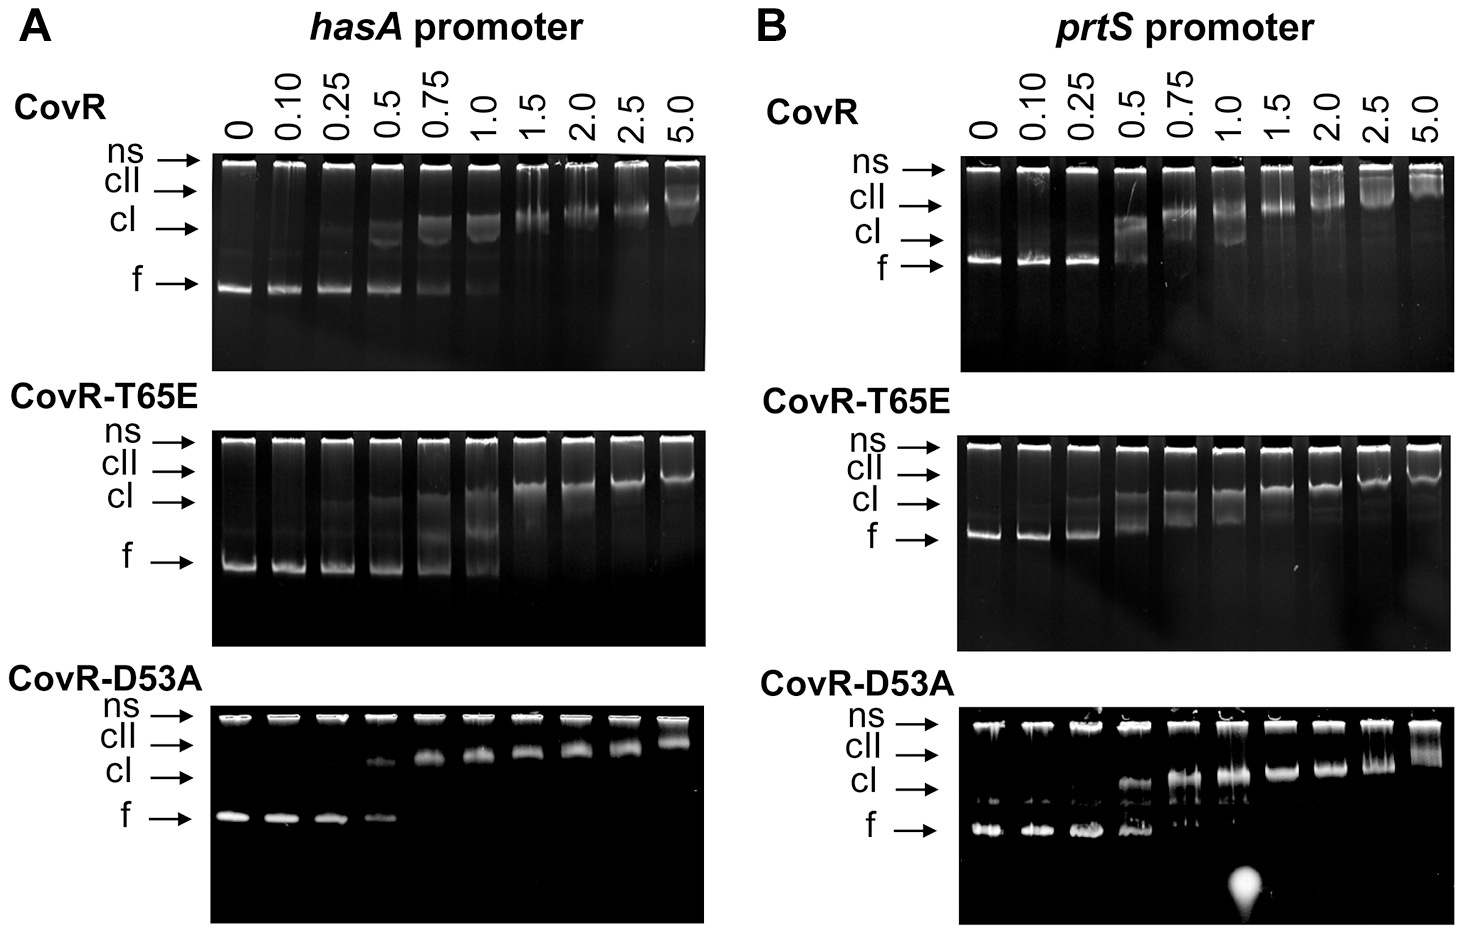 CovR-D53A and CovR-T65E bind CovR-regulated promoters with similar affinity to unphosphorylated CovR.